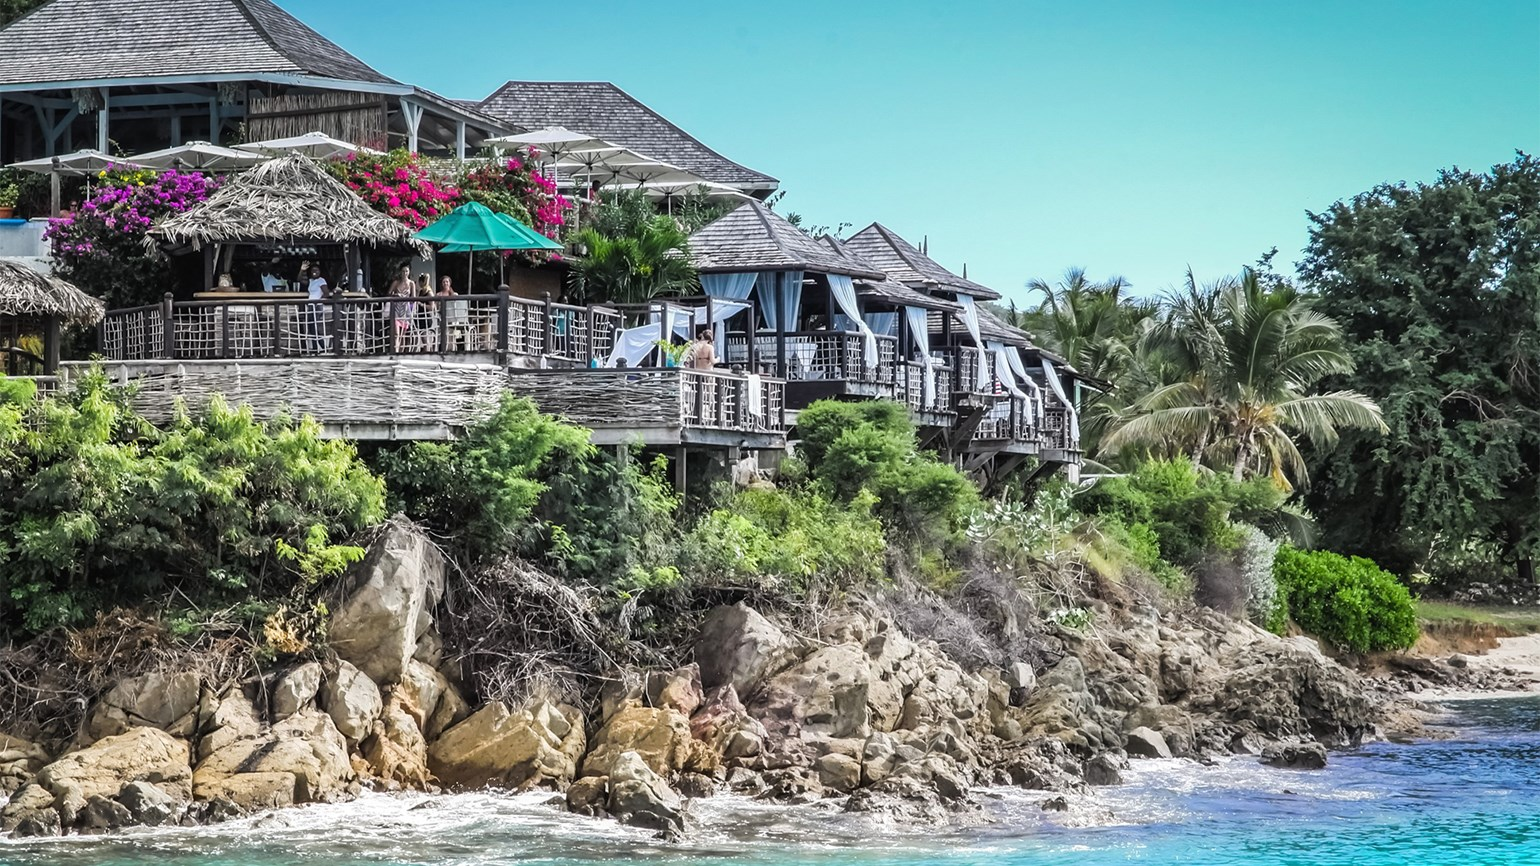 Direct Sales Canada >> Beach Bar Trail highlights hot spots in Antigua and Barbuda: Travel Weekly